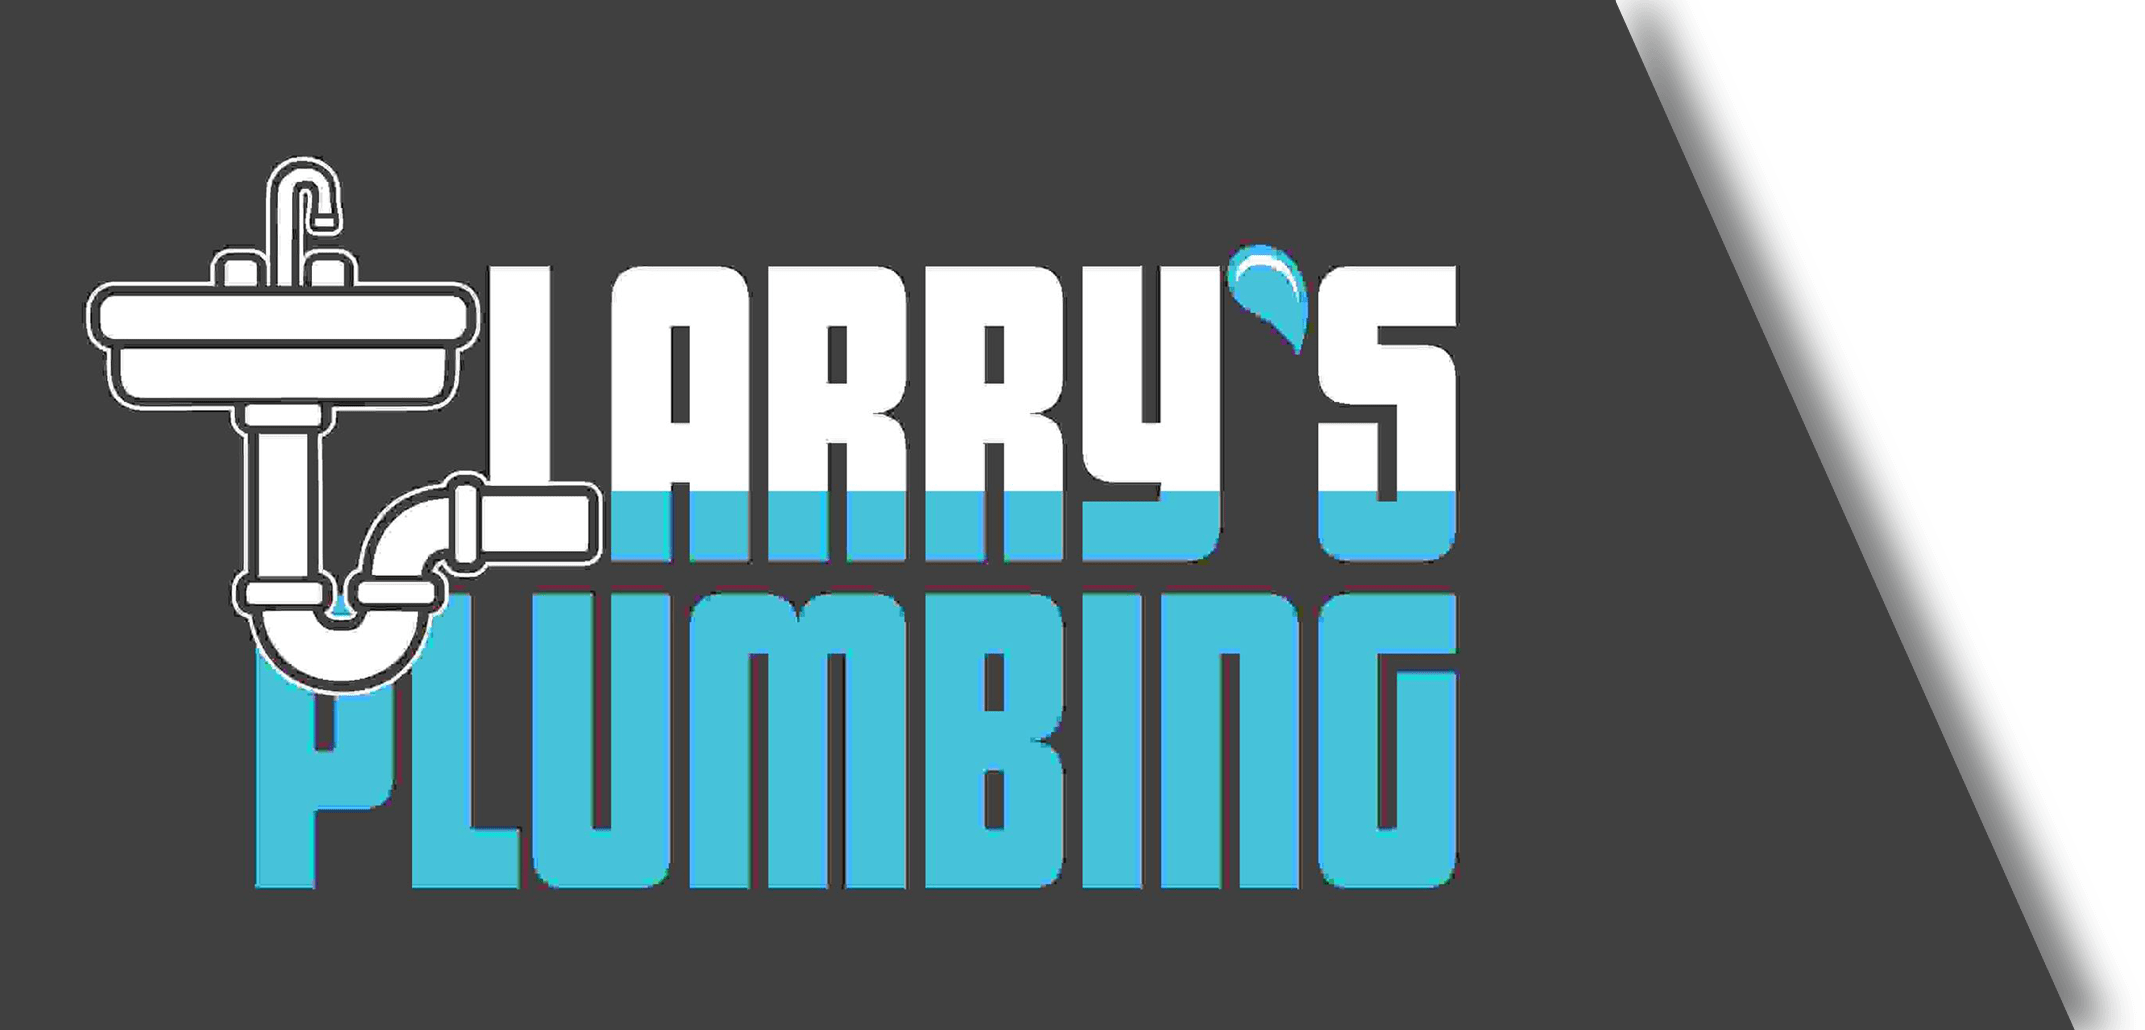 Larry's Plumbing LLC